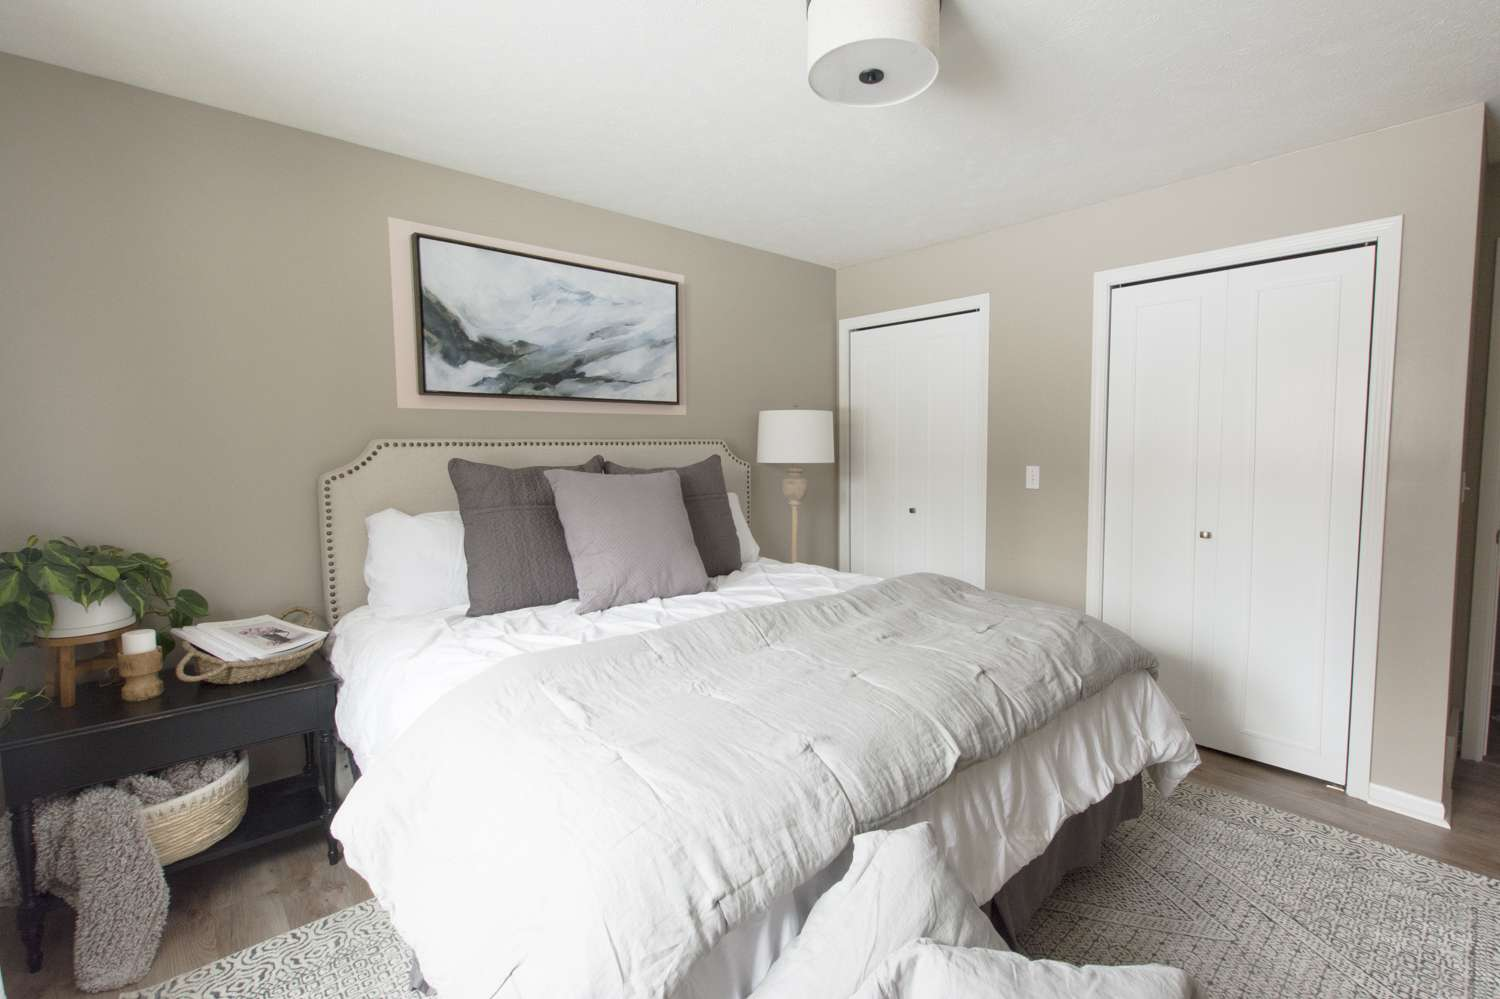 Guest bedroom makeover to a cozy and inviting space.